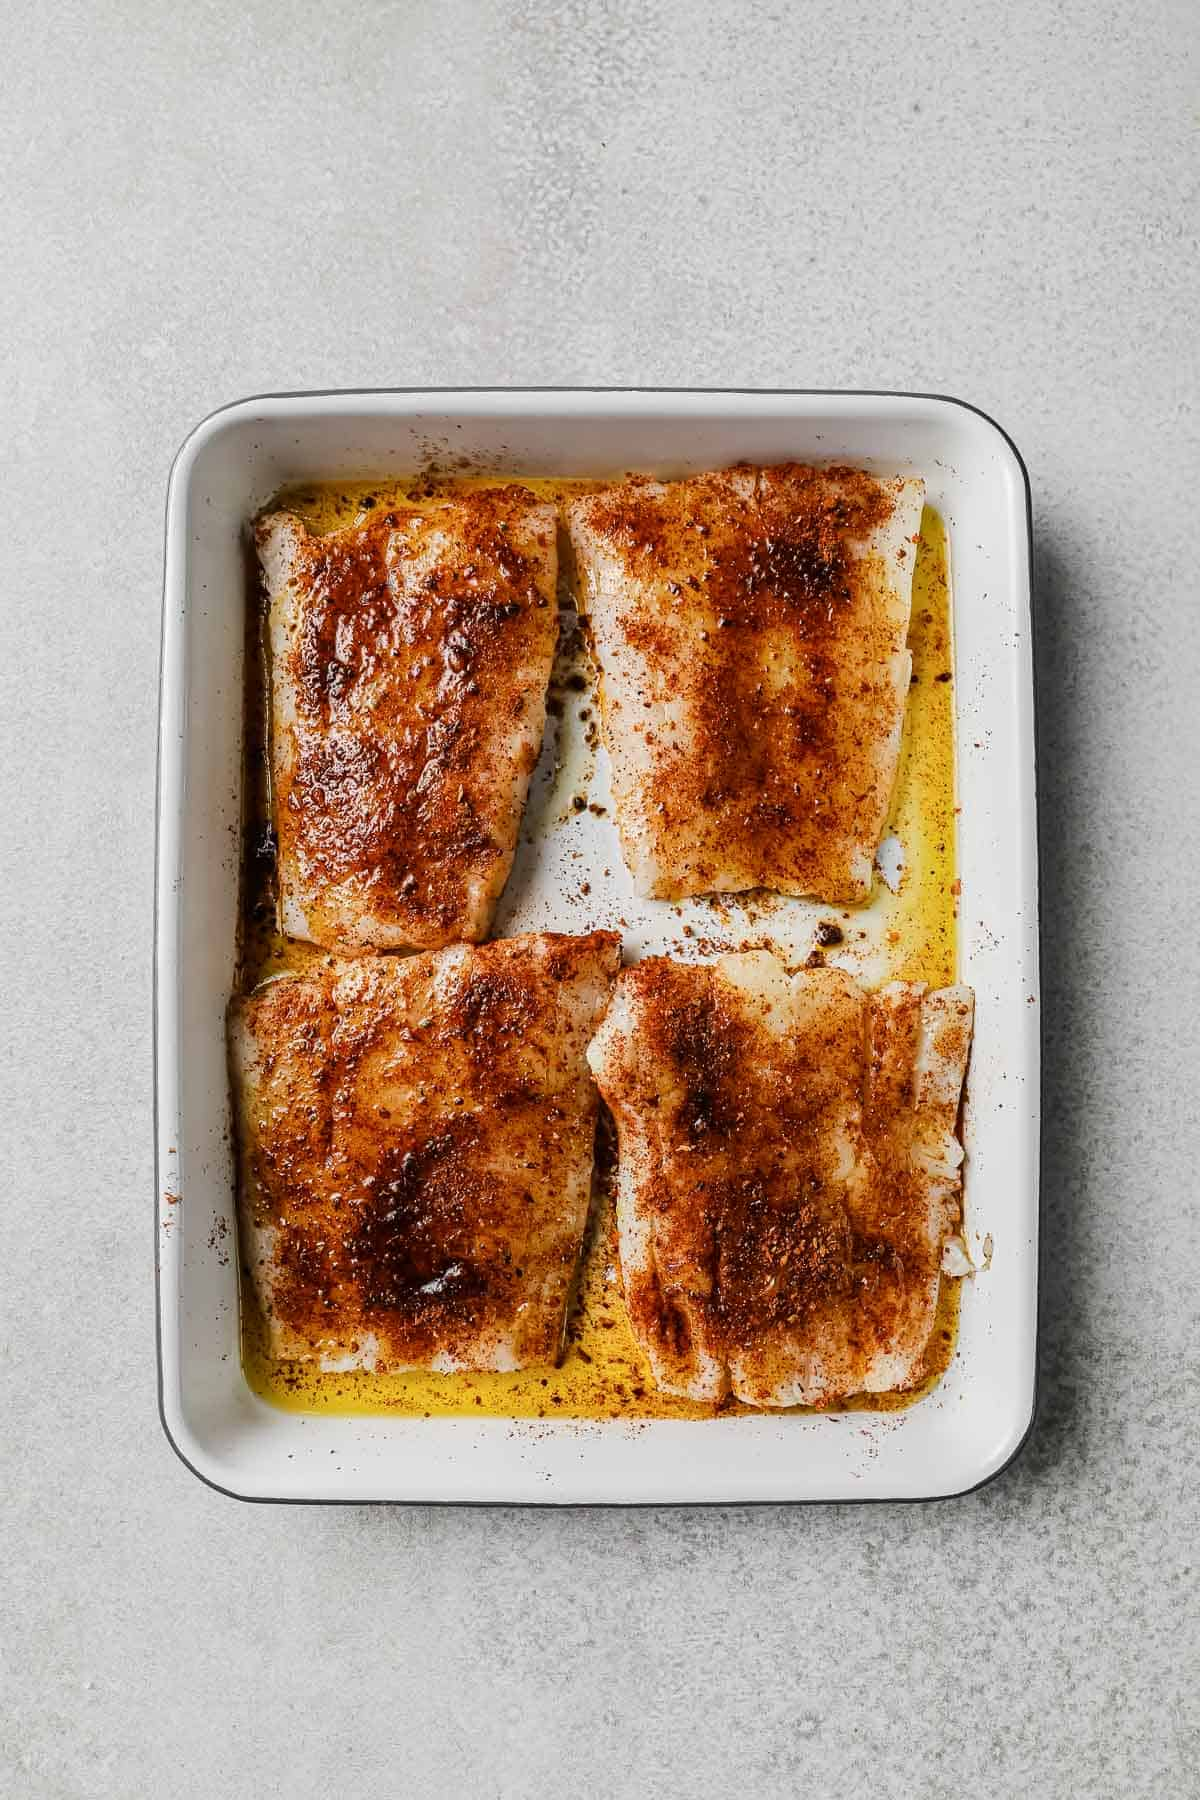 cod filets drizzled with olive oil and seasoning with taco seasoning